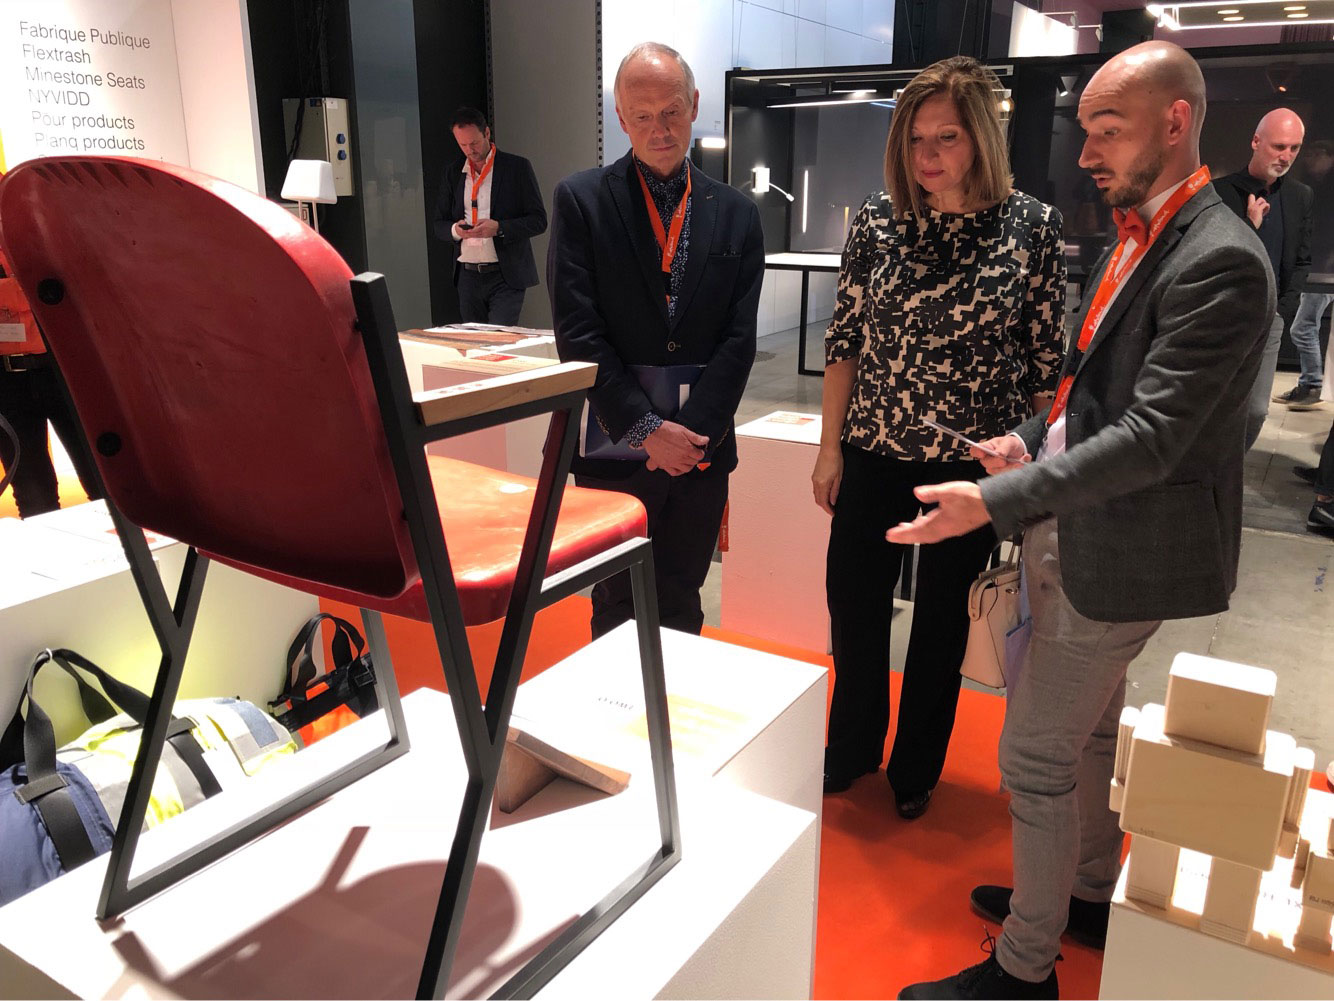 Design Interieur Job Meaningful Ideas And Smart Solutions Central At Interieur 2018 Two O